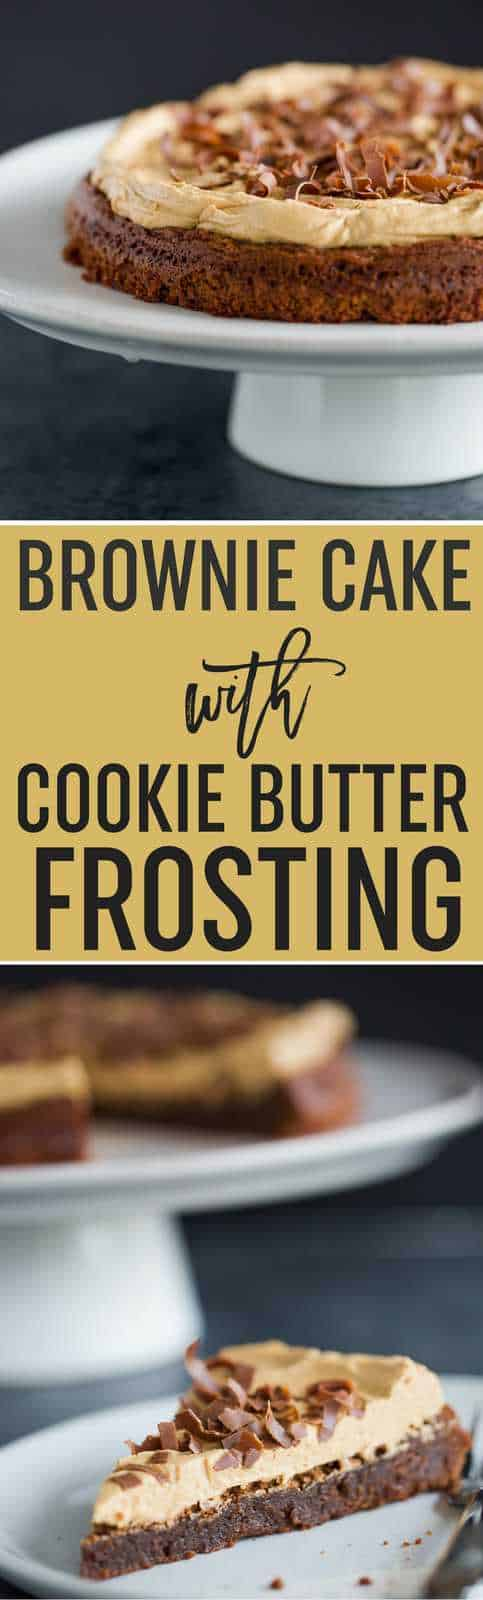 Brownie Cake with Cookie Butter Frosting | A dense and moist brownie is baked into a cake then topped with Biscoff frosting. A perfect combination of sweet, salty, and a touch of spice! An easy dessert perfect for company! #brownies #cake #easy #recipe #biscoff #cookiebutter #speculoos